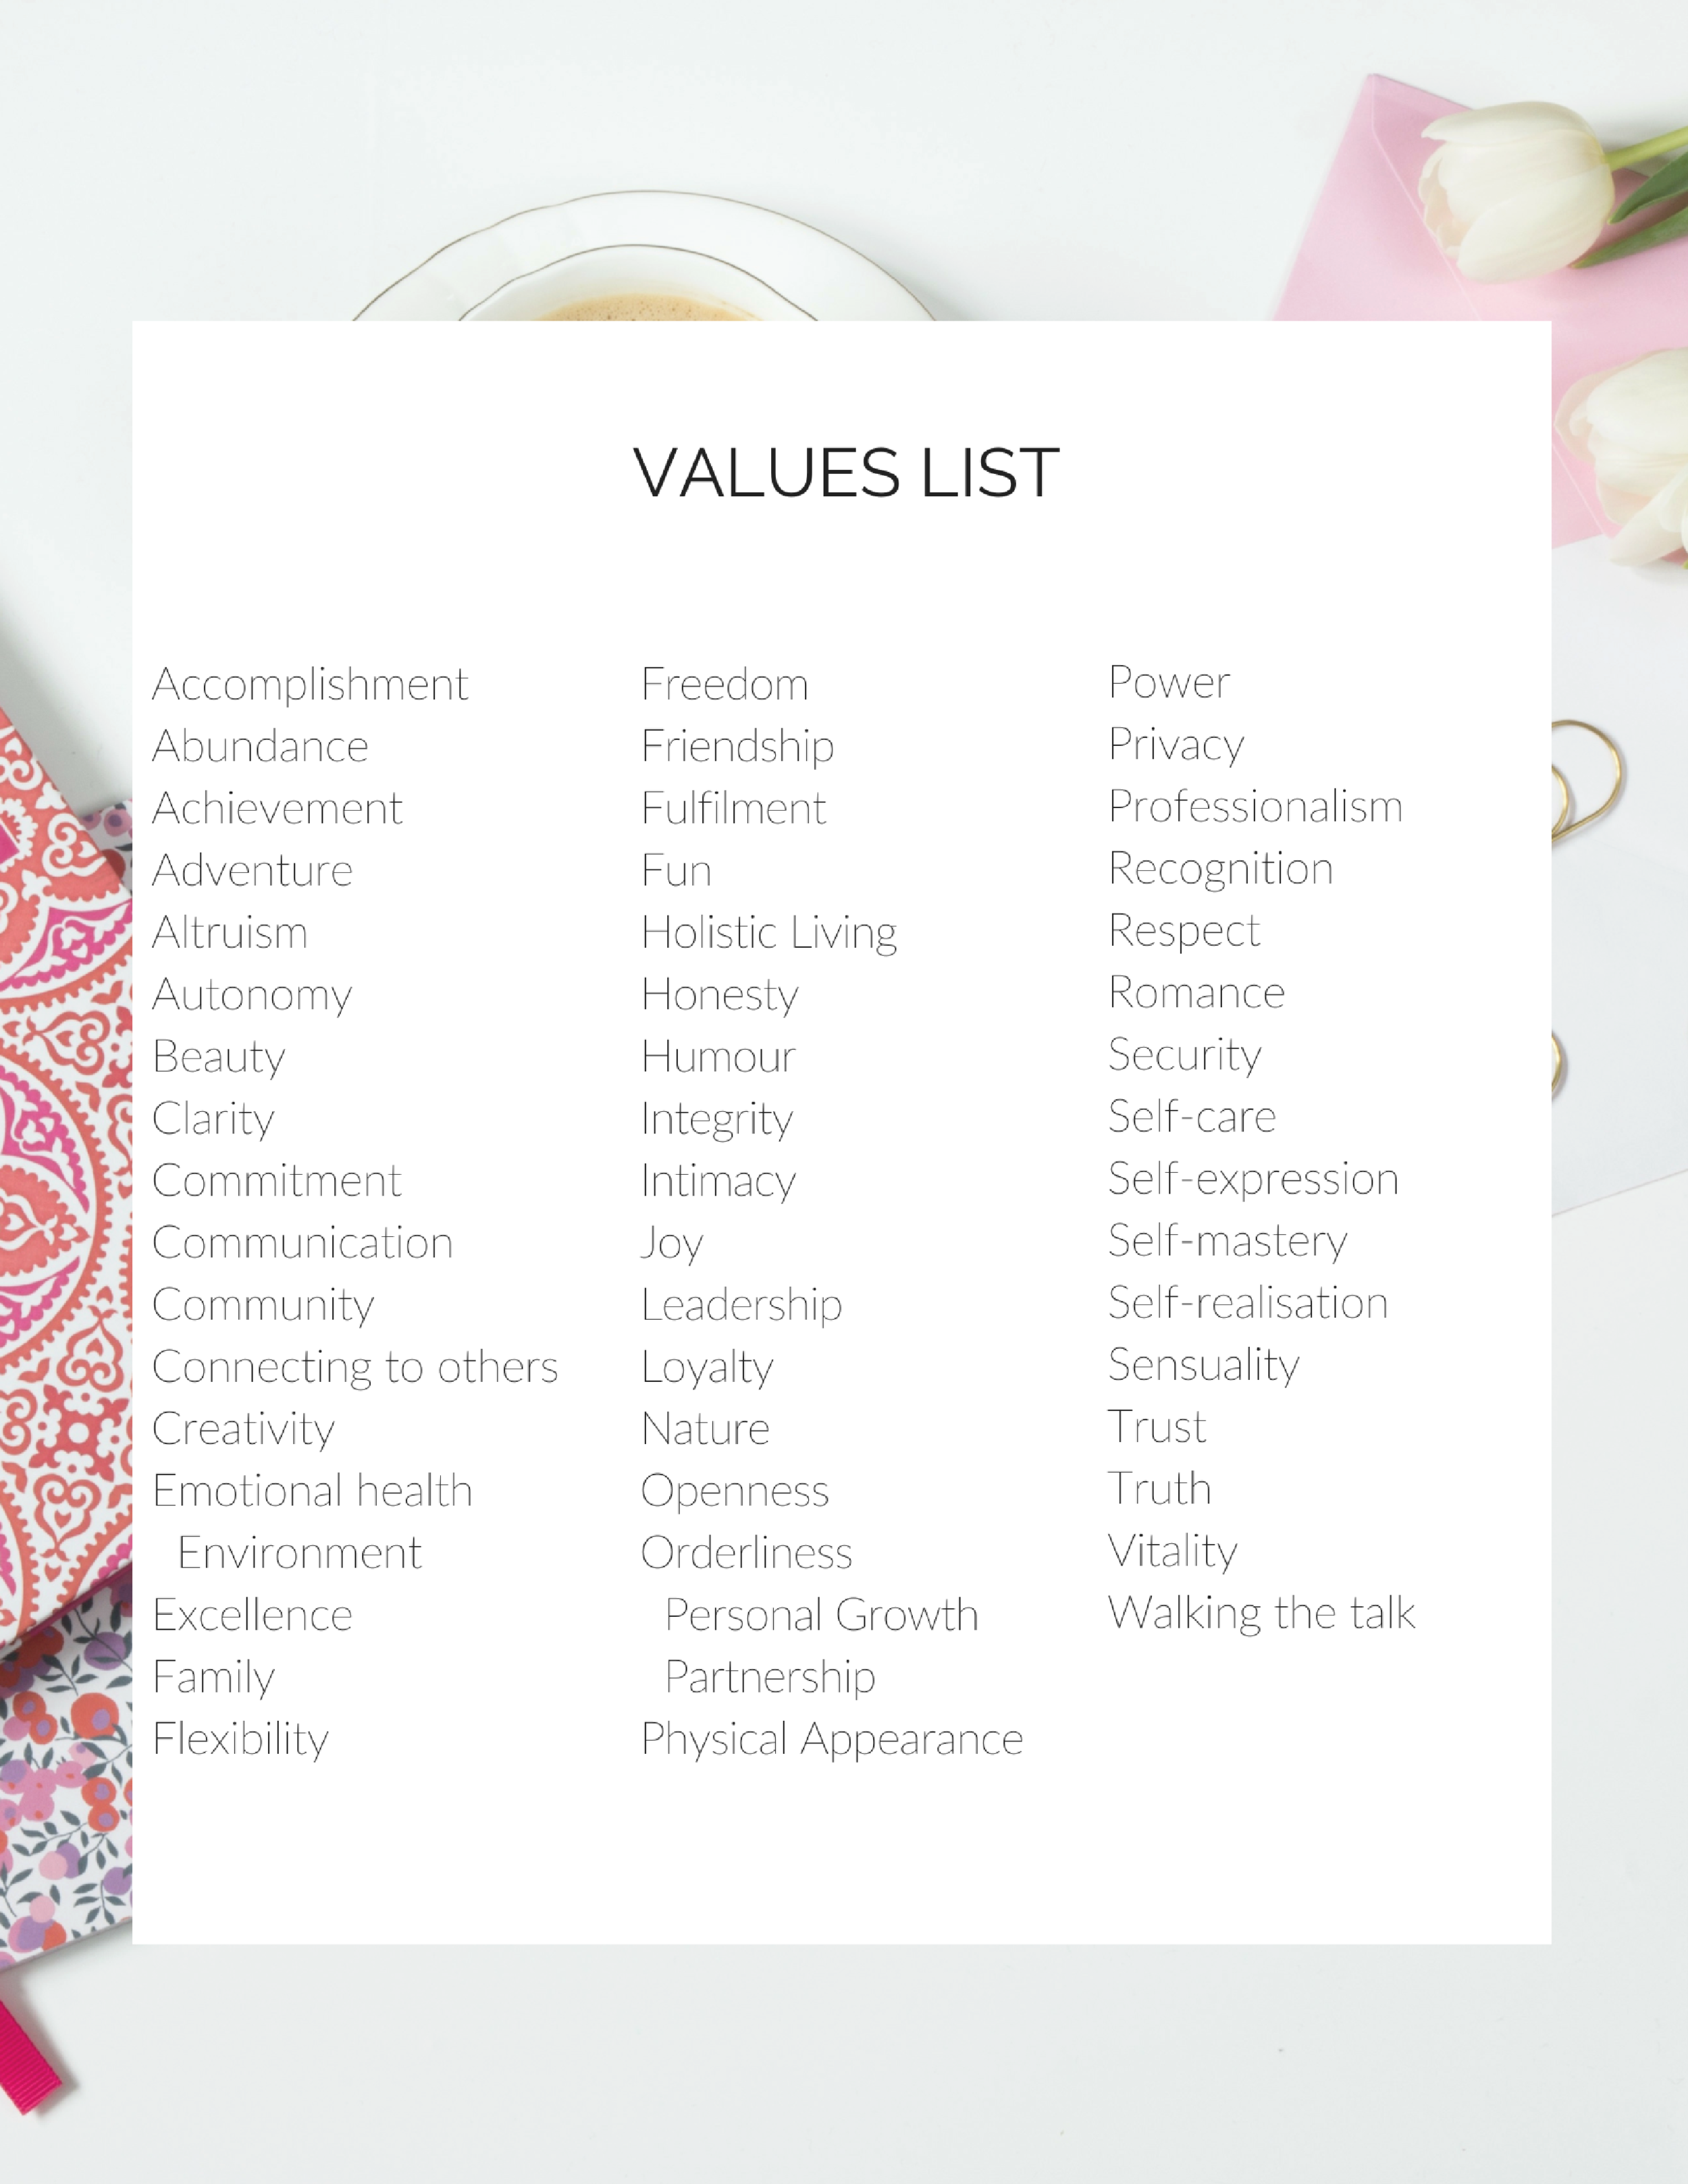 Values list.png